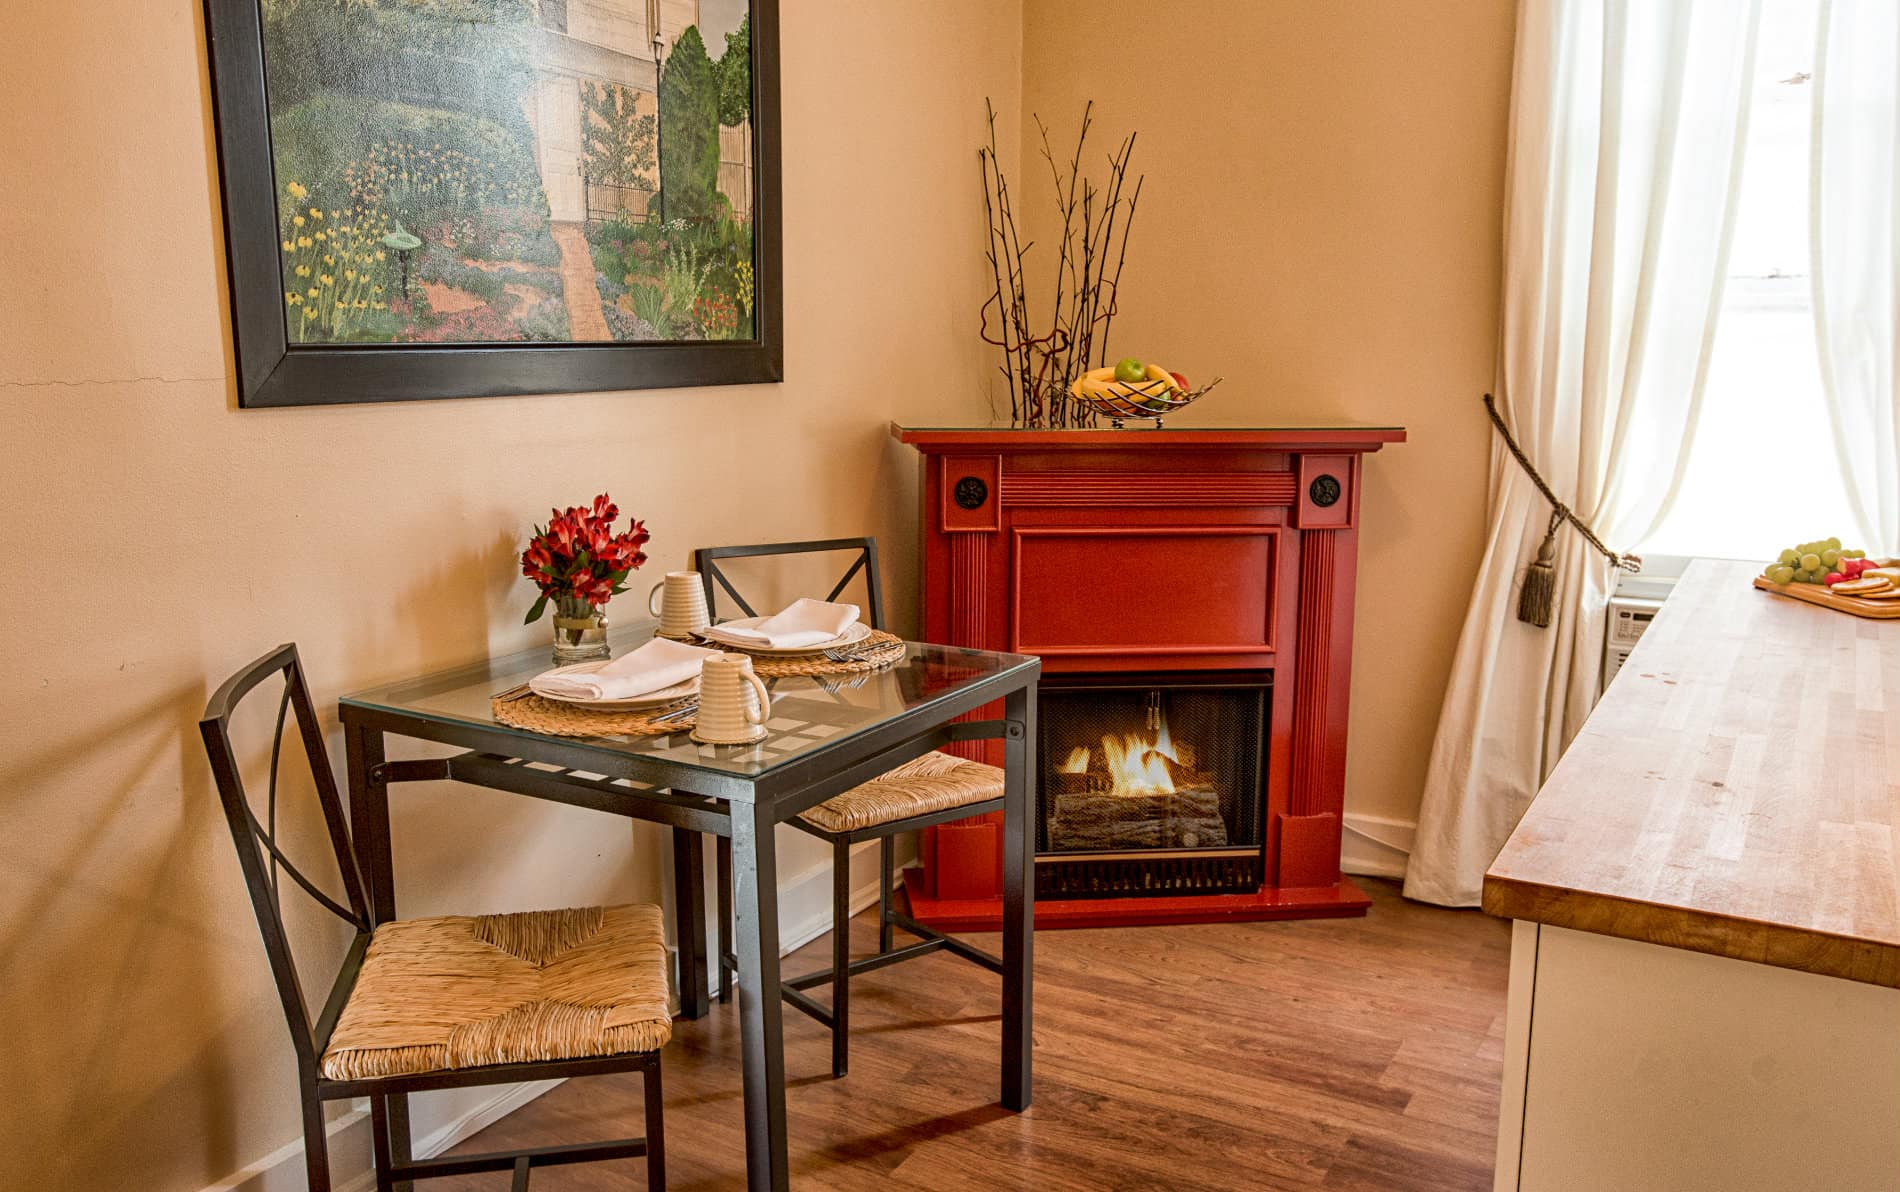 Sitting room with a red fireplace with burning fire, black iron table for two and picture of an outside garden